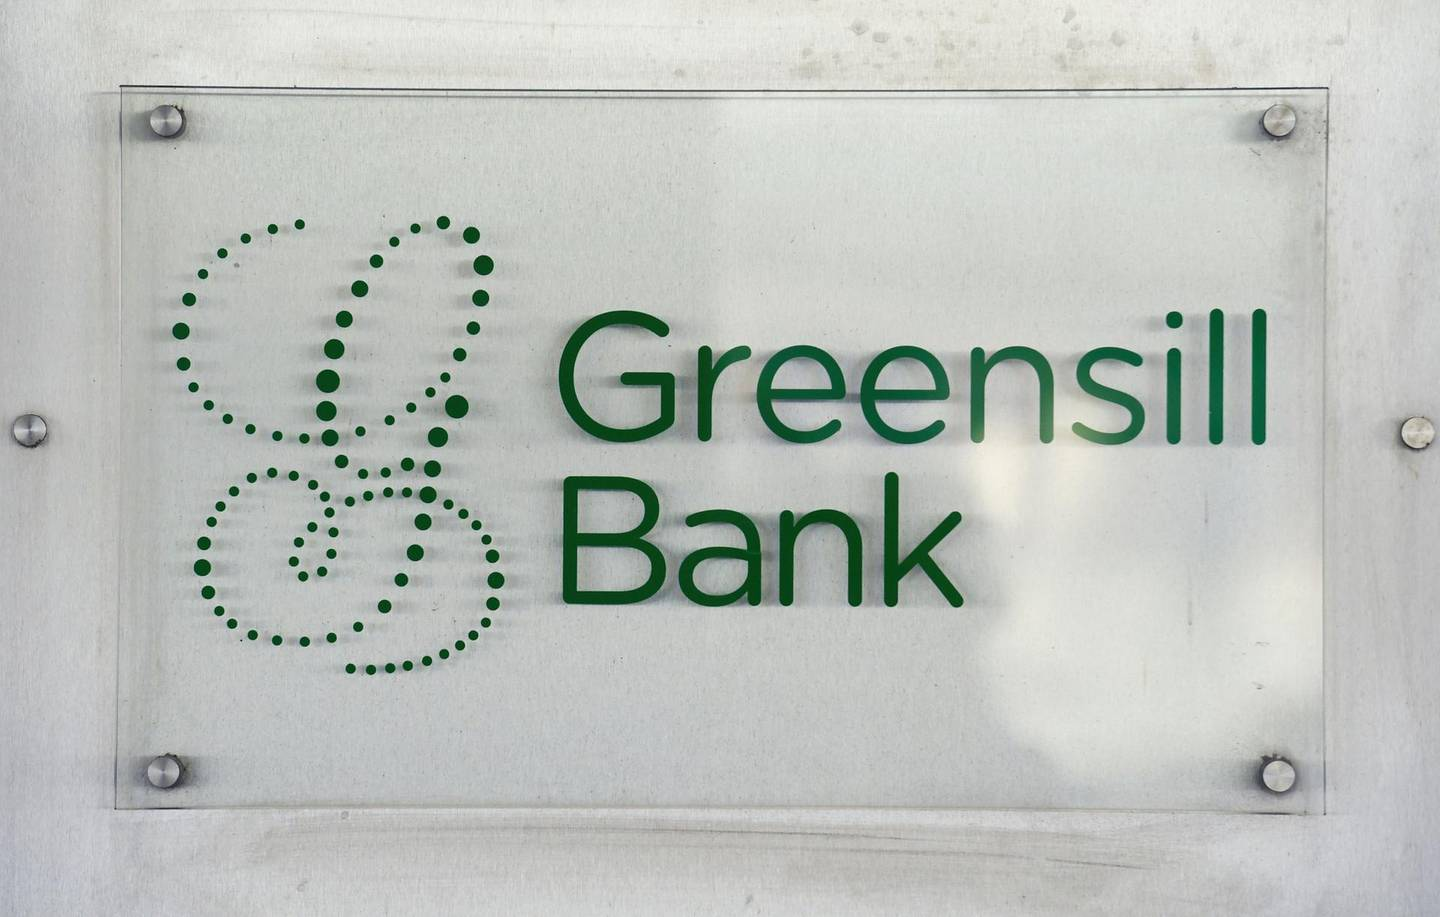 FILE PHOTO: The logo of Greensill Bank is pictured in downtown Bremen, Germany, July 3, 2019. REUTERS/Fabian Bimmer/File Photo